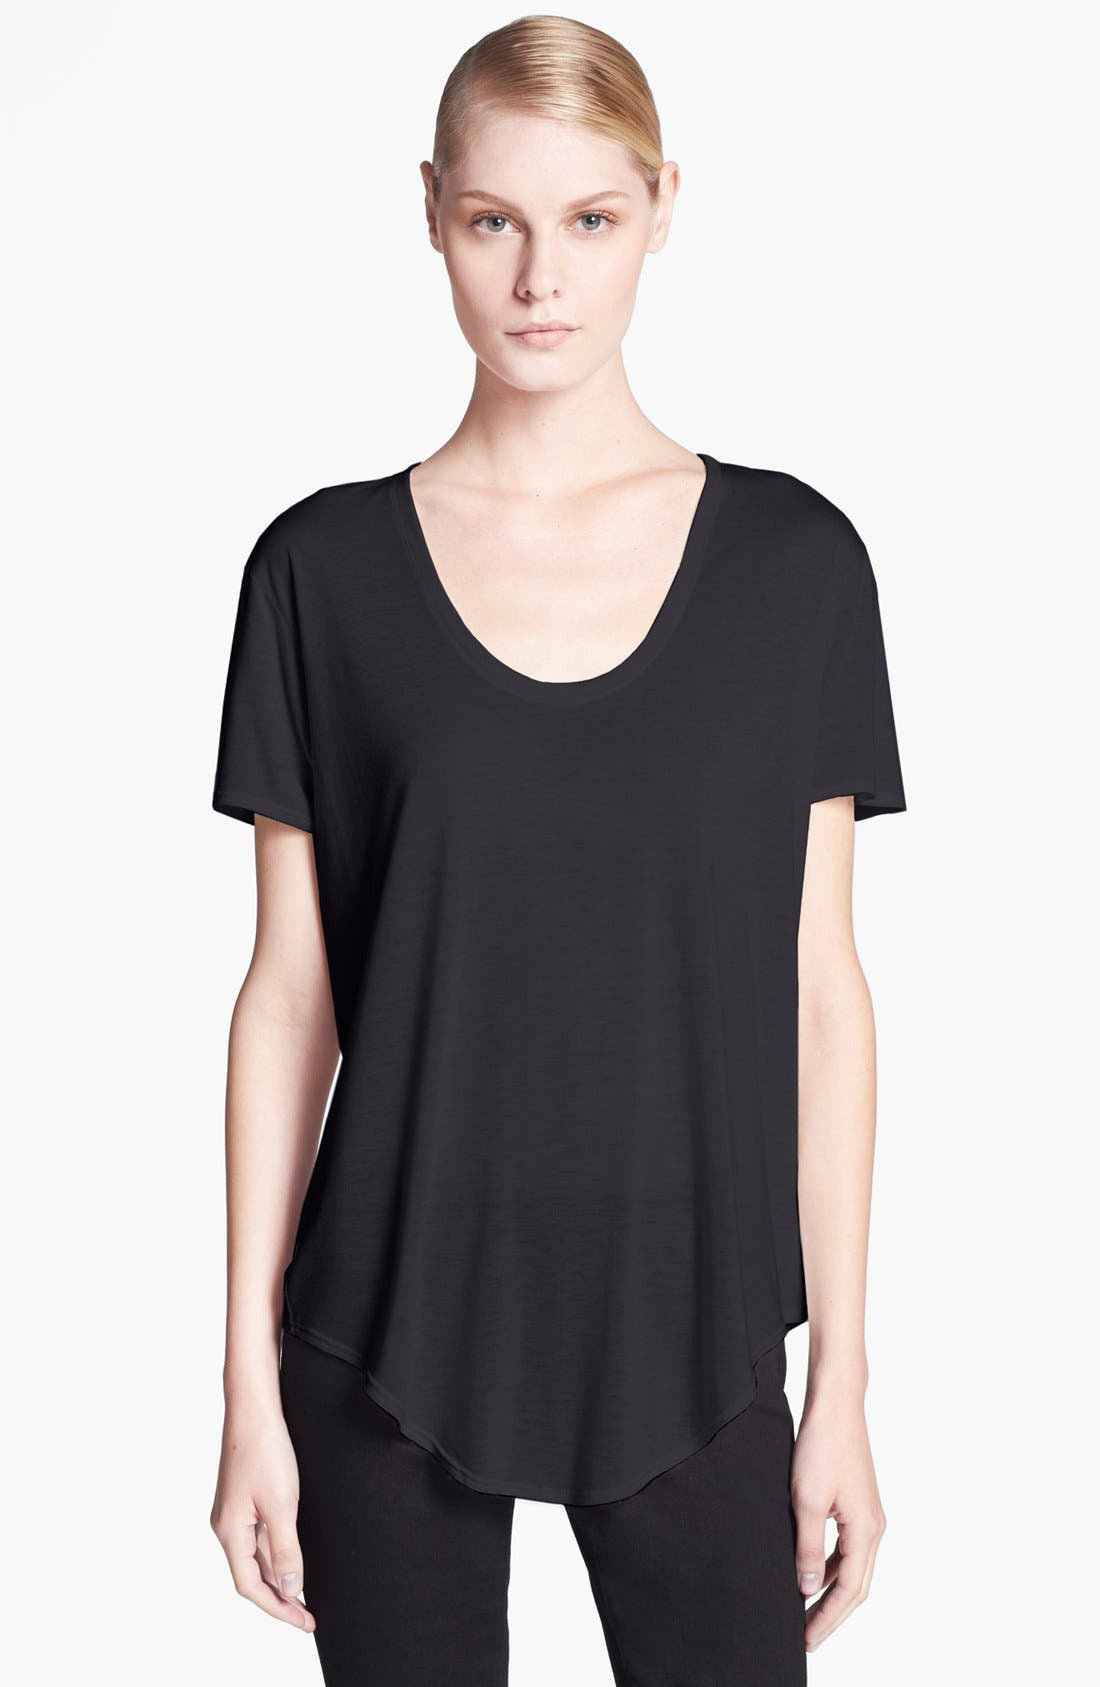 Alternate Image 1 Selected - HELMUT Helmut Lang 'Kinetic' Jersey Top